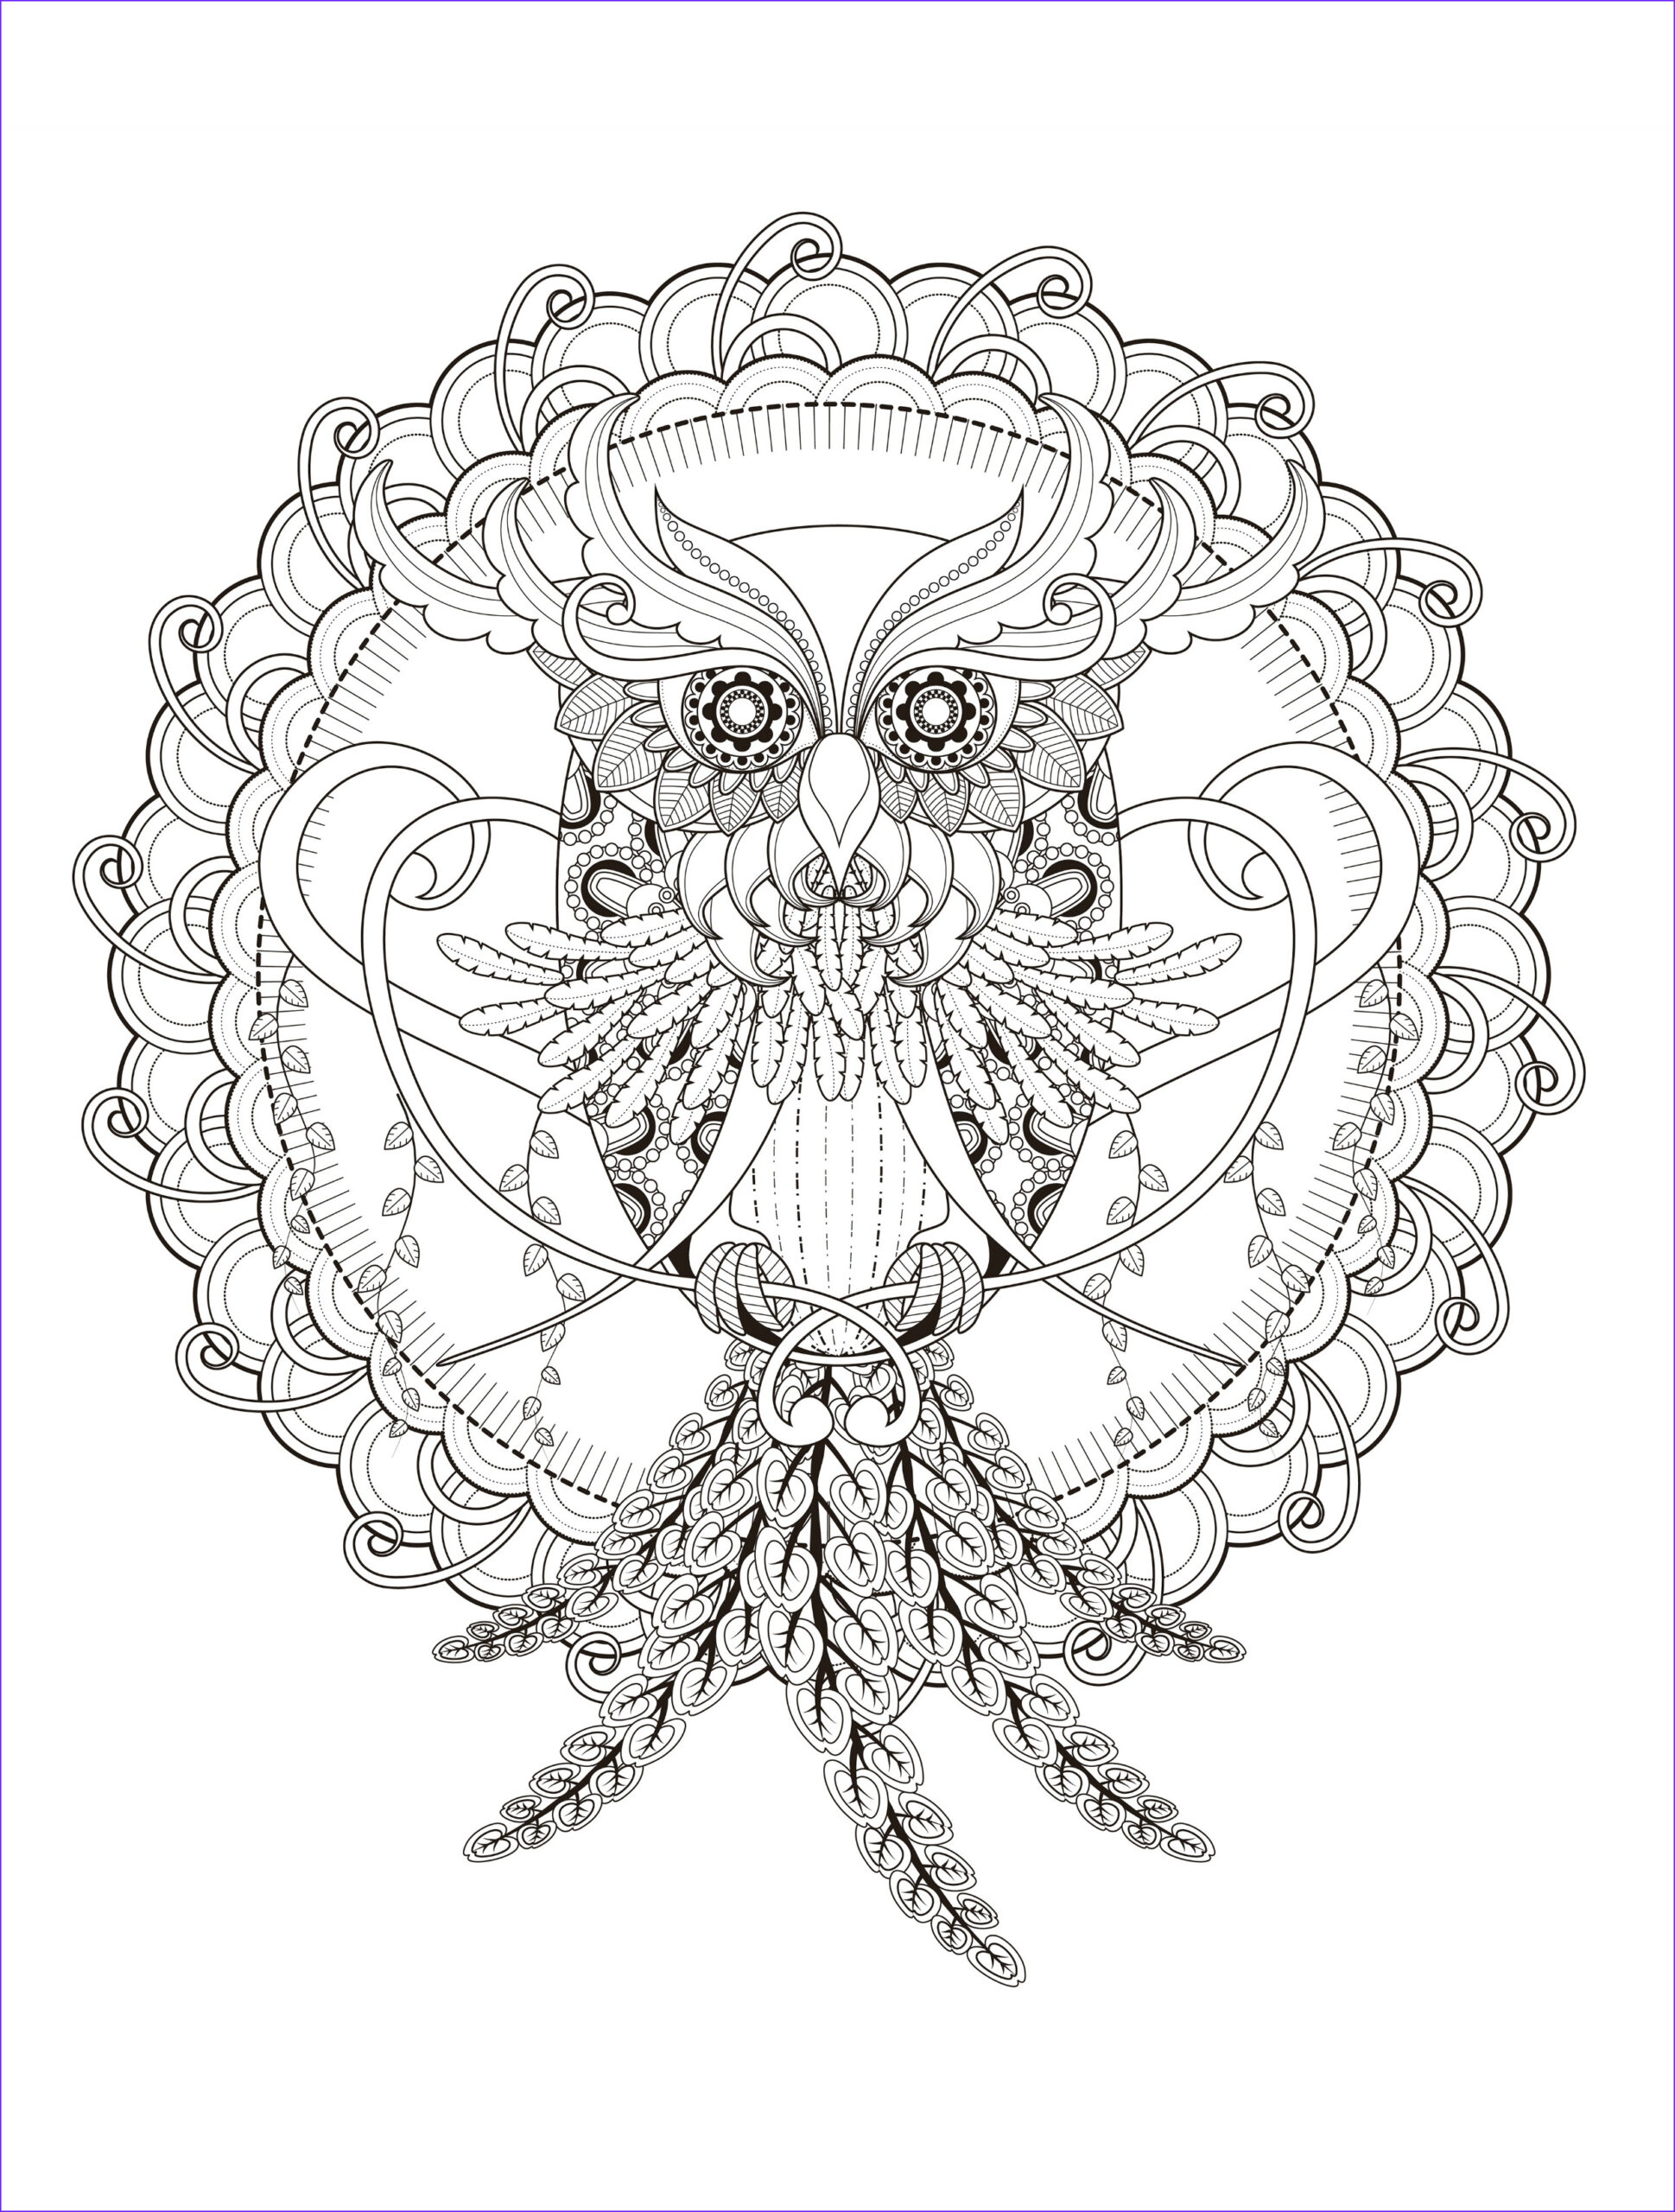 Owl Coloring Awesome Photography Owl Coloring Pages for Adults Free Detailed Owl Coloring